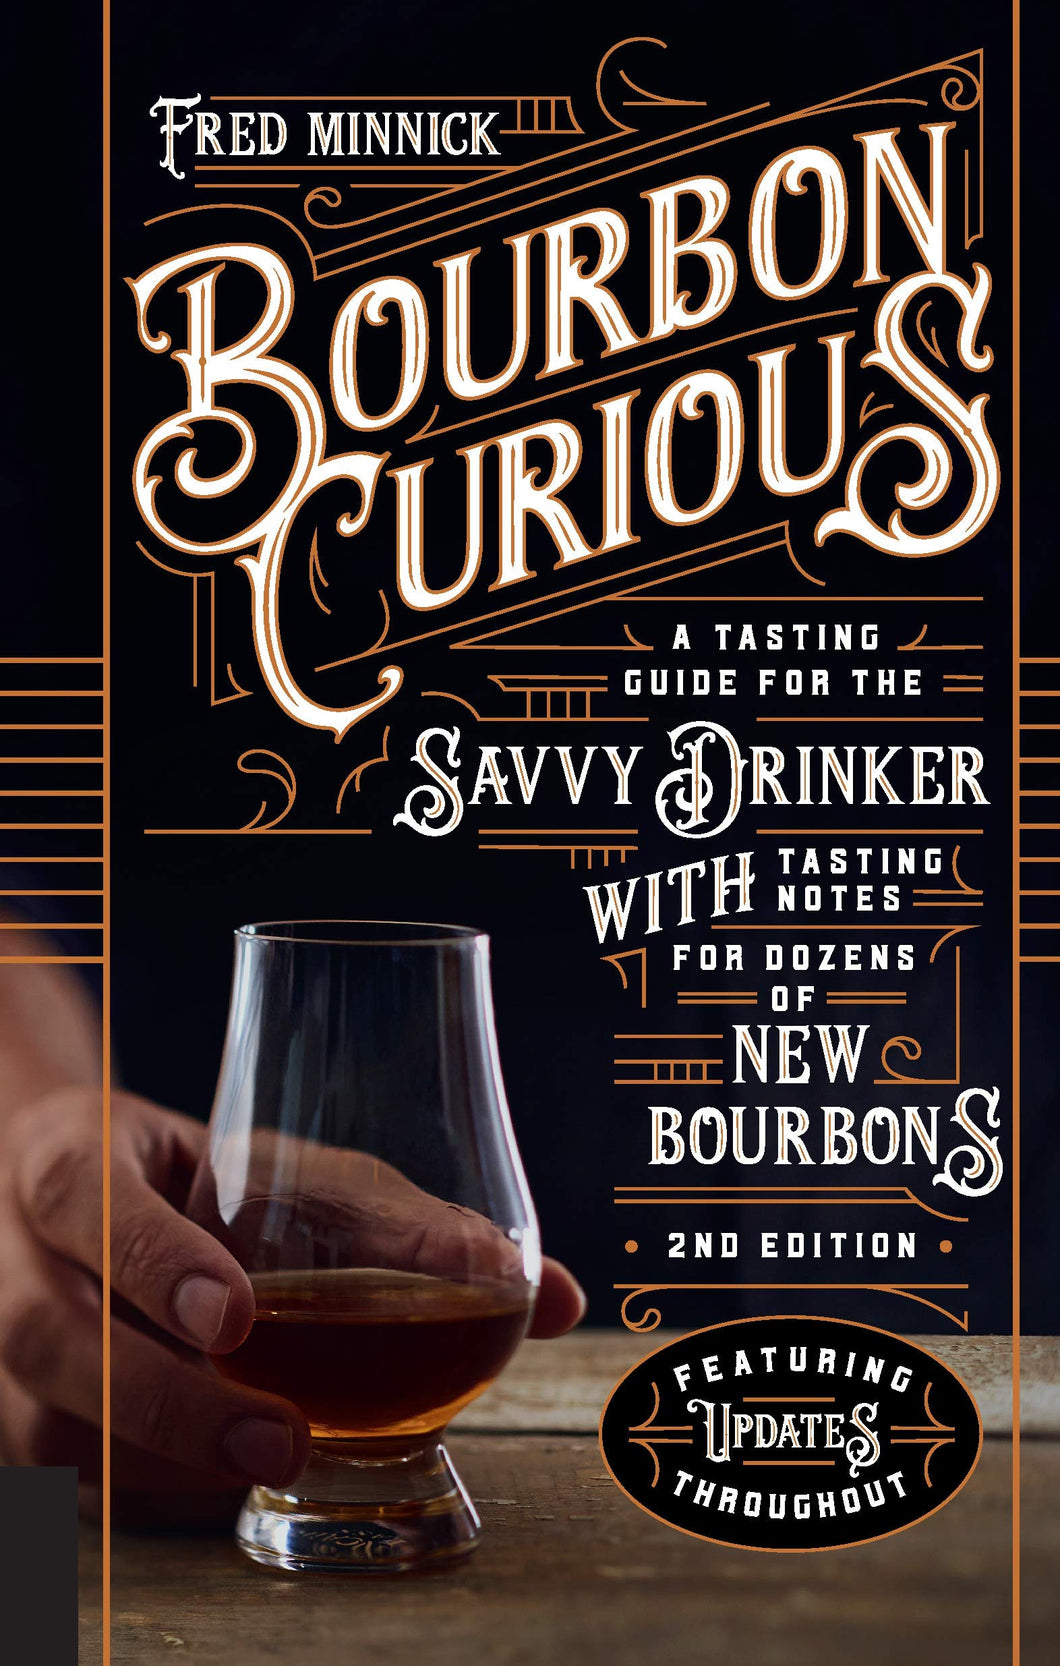 Bourbon Curious: A Tasting Guide for the Savvy Drinker with Tasting Notes for Dozens of New Bourbons